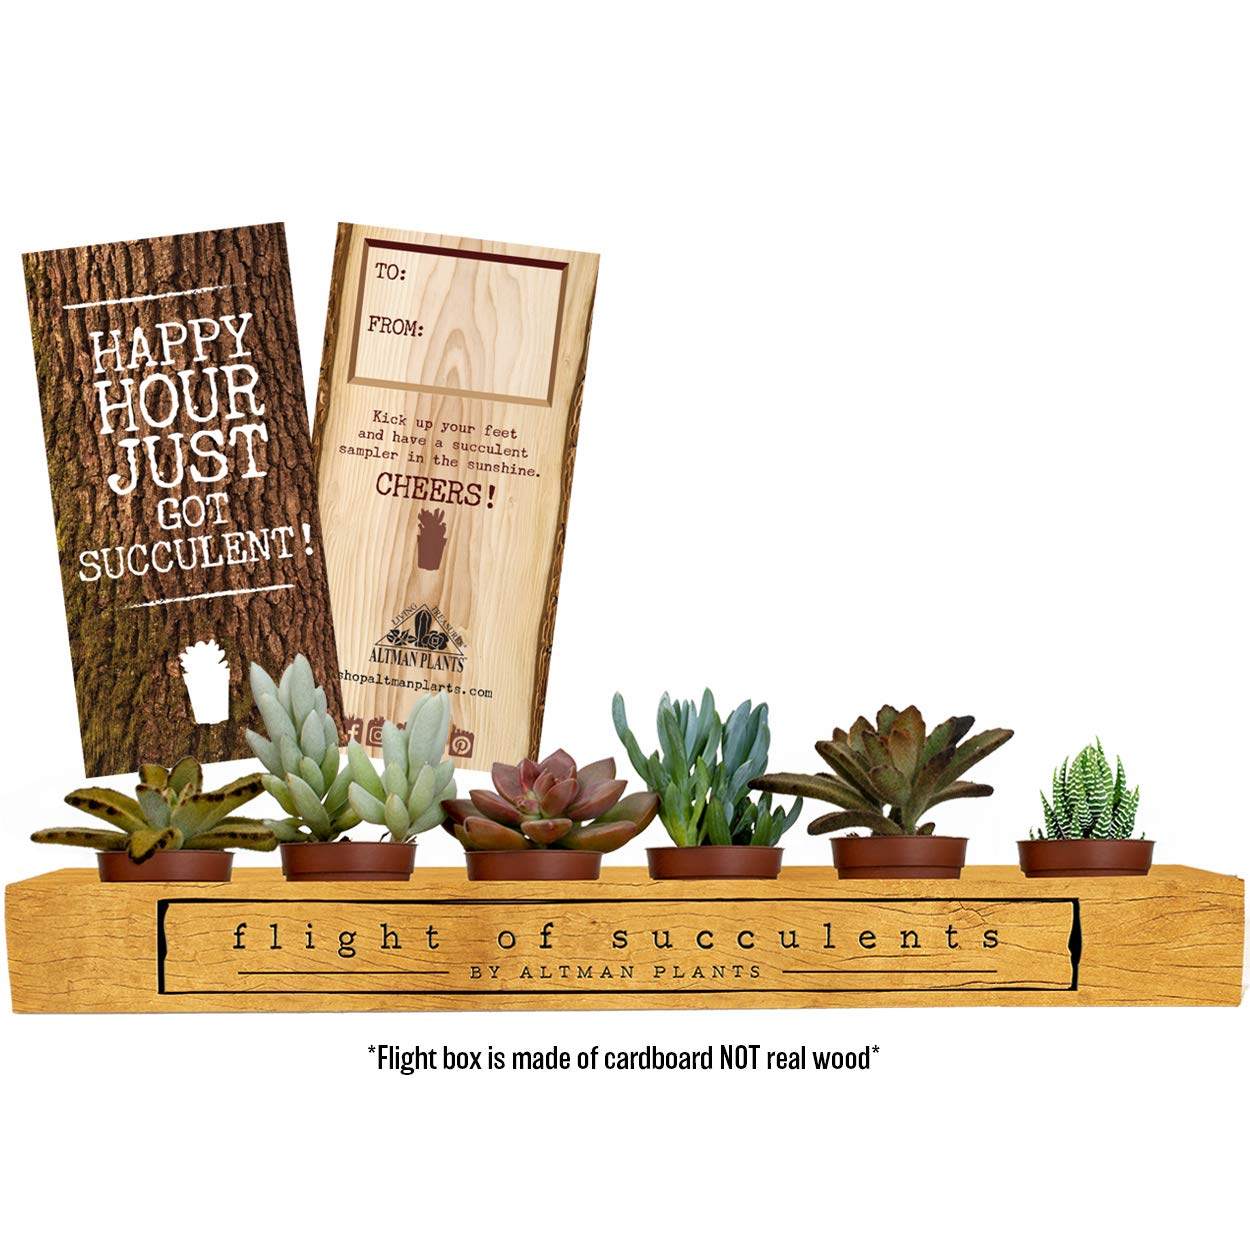 Altman Plants Assorted Mini Live Fully Rooted in Soil Flight of Succulents Perfect Gift for any occasion, Includes (1) To/From Card 1.75'' 6 Pack